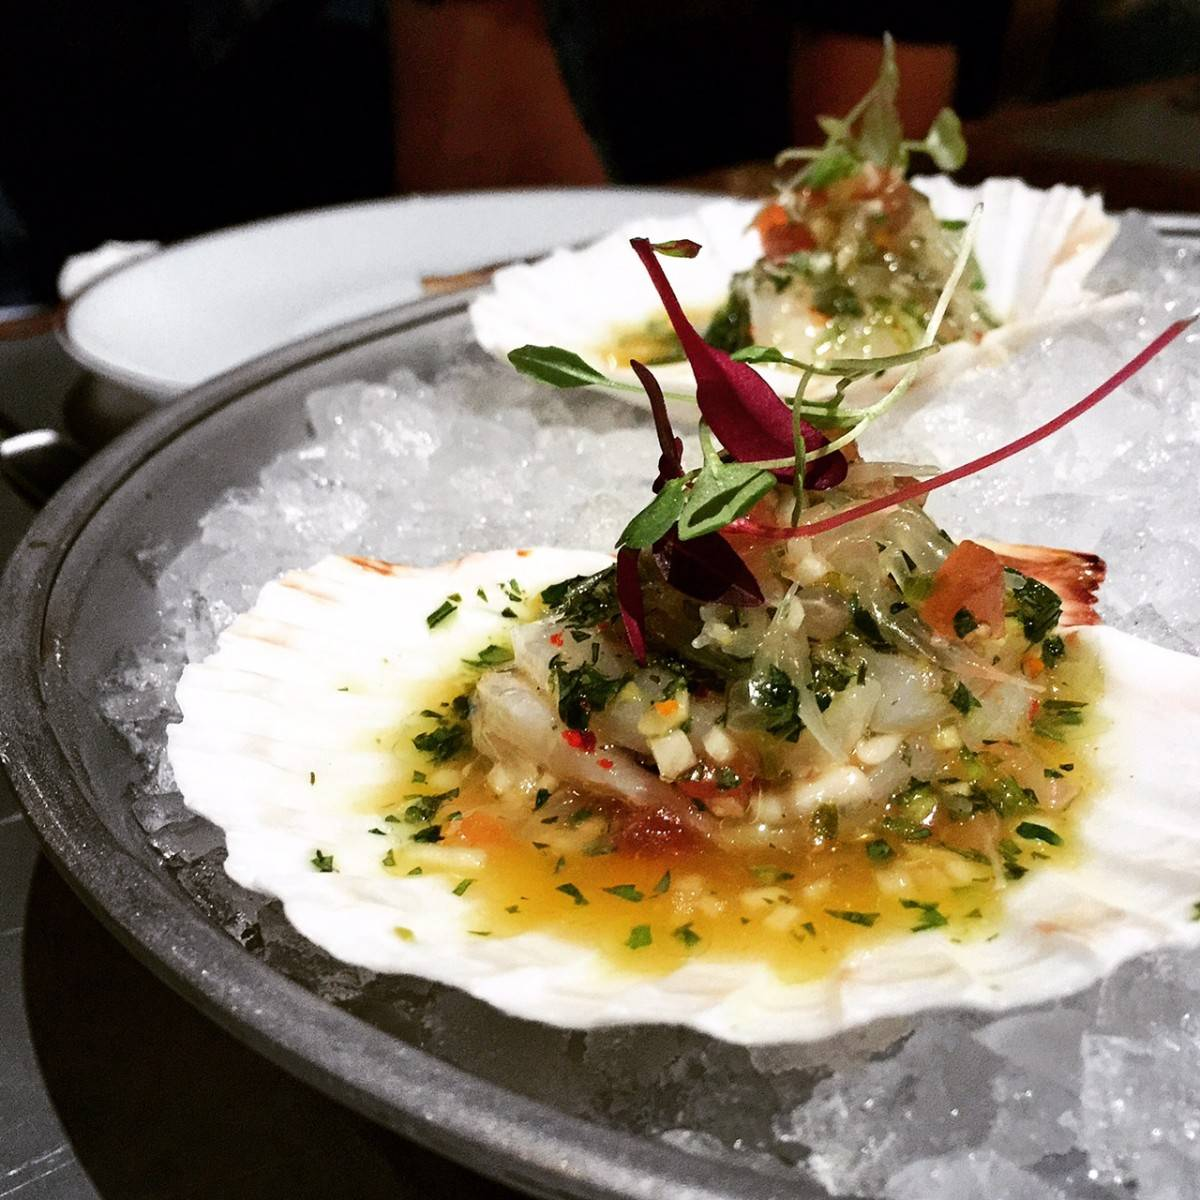 mr & mrs fox quarry bay oyster scallop ceviche elaine white